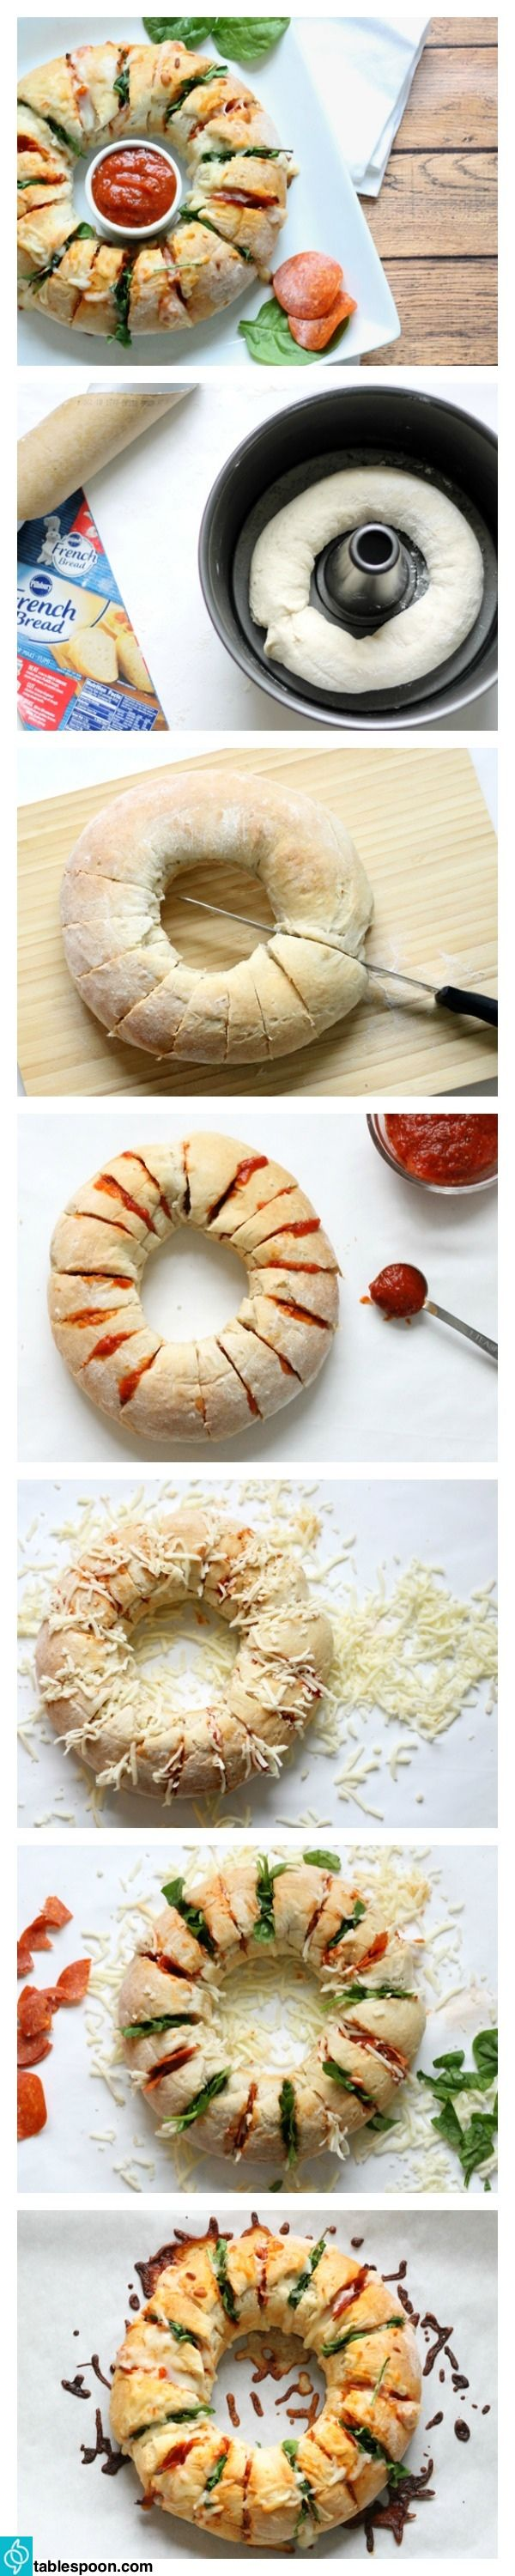 This fun circle of crusty stuffed bread presents traditional pizza flavors in a totally untraditional way.